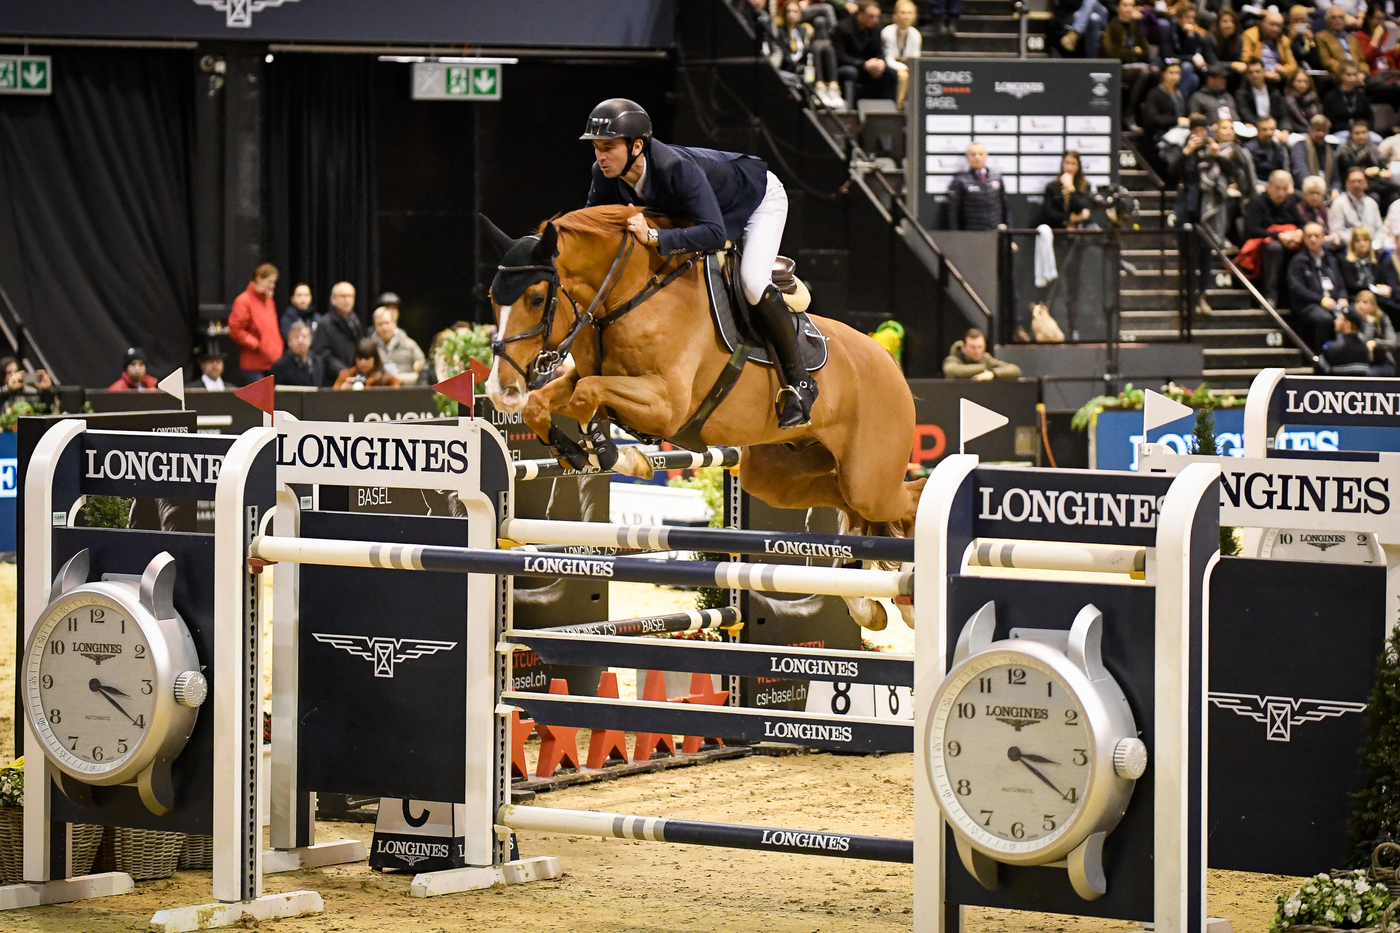 Longines Show Jumping Event: Four days of exciting competitions and exceptional performances for the Longines CSI Basel 2020 1